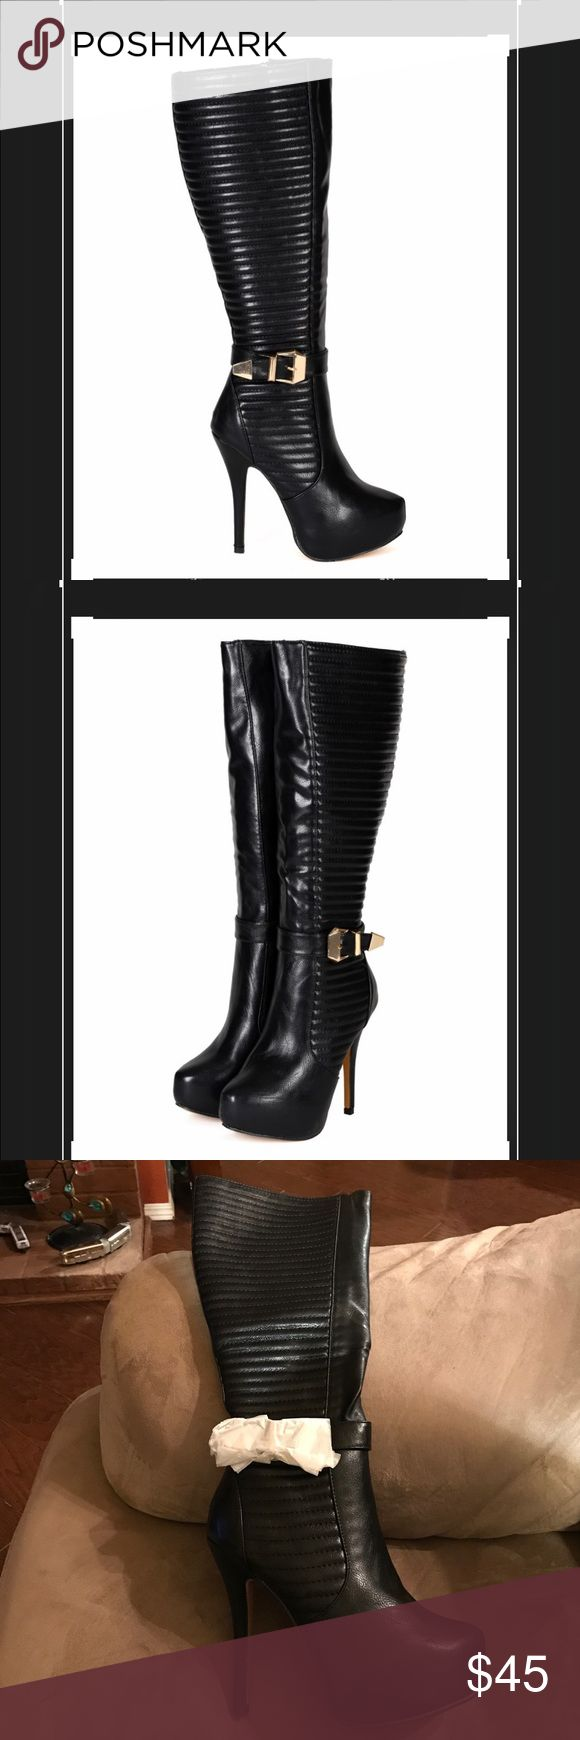 Brand New! Black knee high boots Sexy Black quilted faux leather heels with gold buckle detail,  full zipper on inside of each leg and approximately 5 inch heel and 2 inch platform. New in original packaging, never been worn. nature breeze  Shoes Heeled Boots